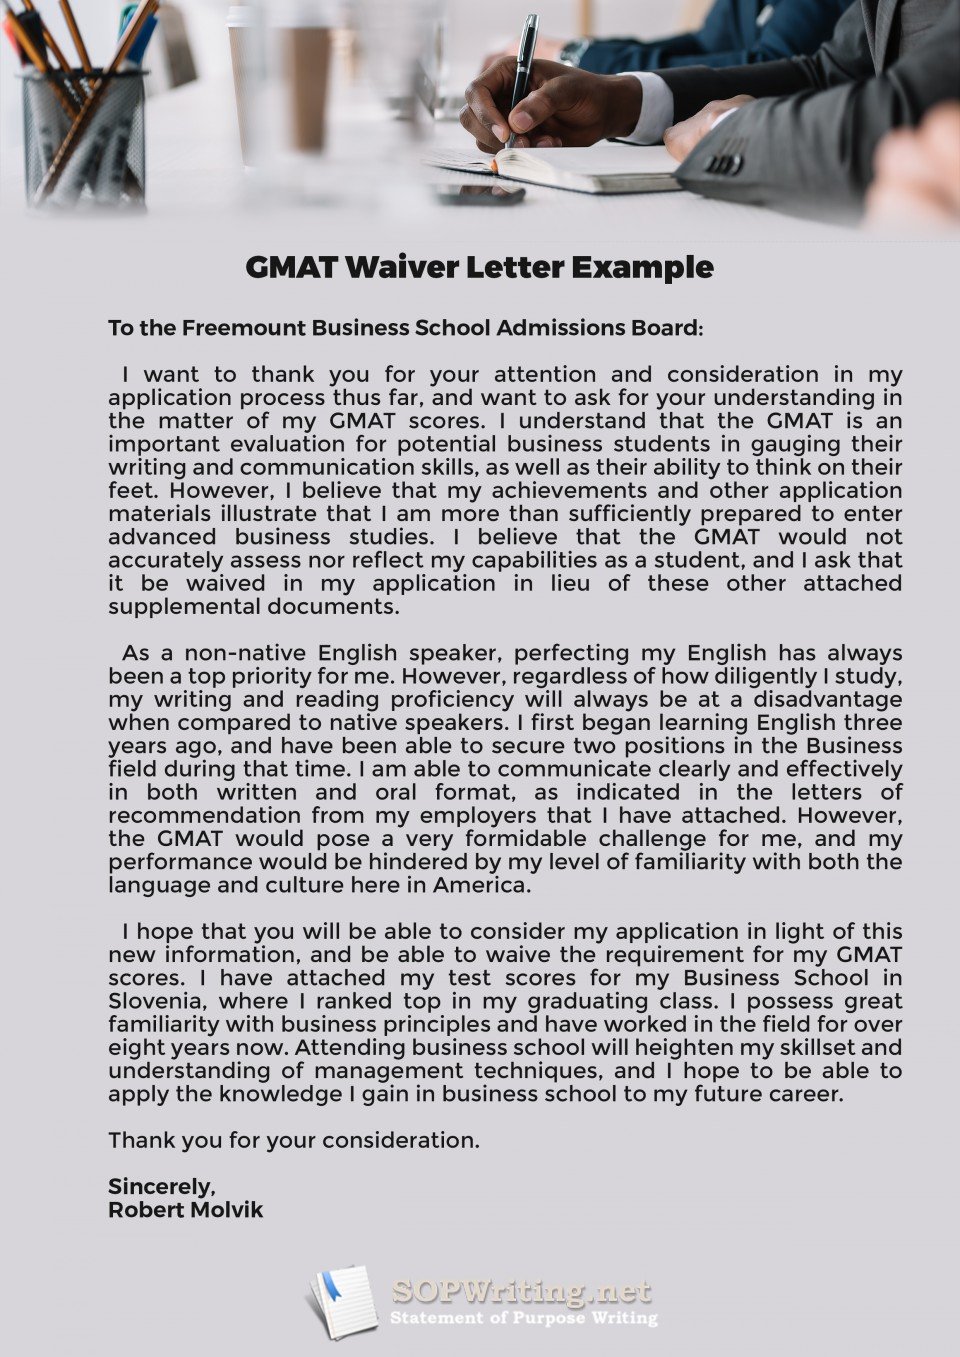 013 Essay Example Gmat Examples Waiver Top Argument Sample 6 Awa 960